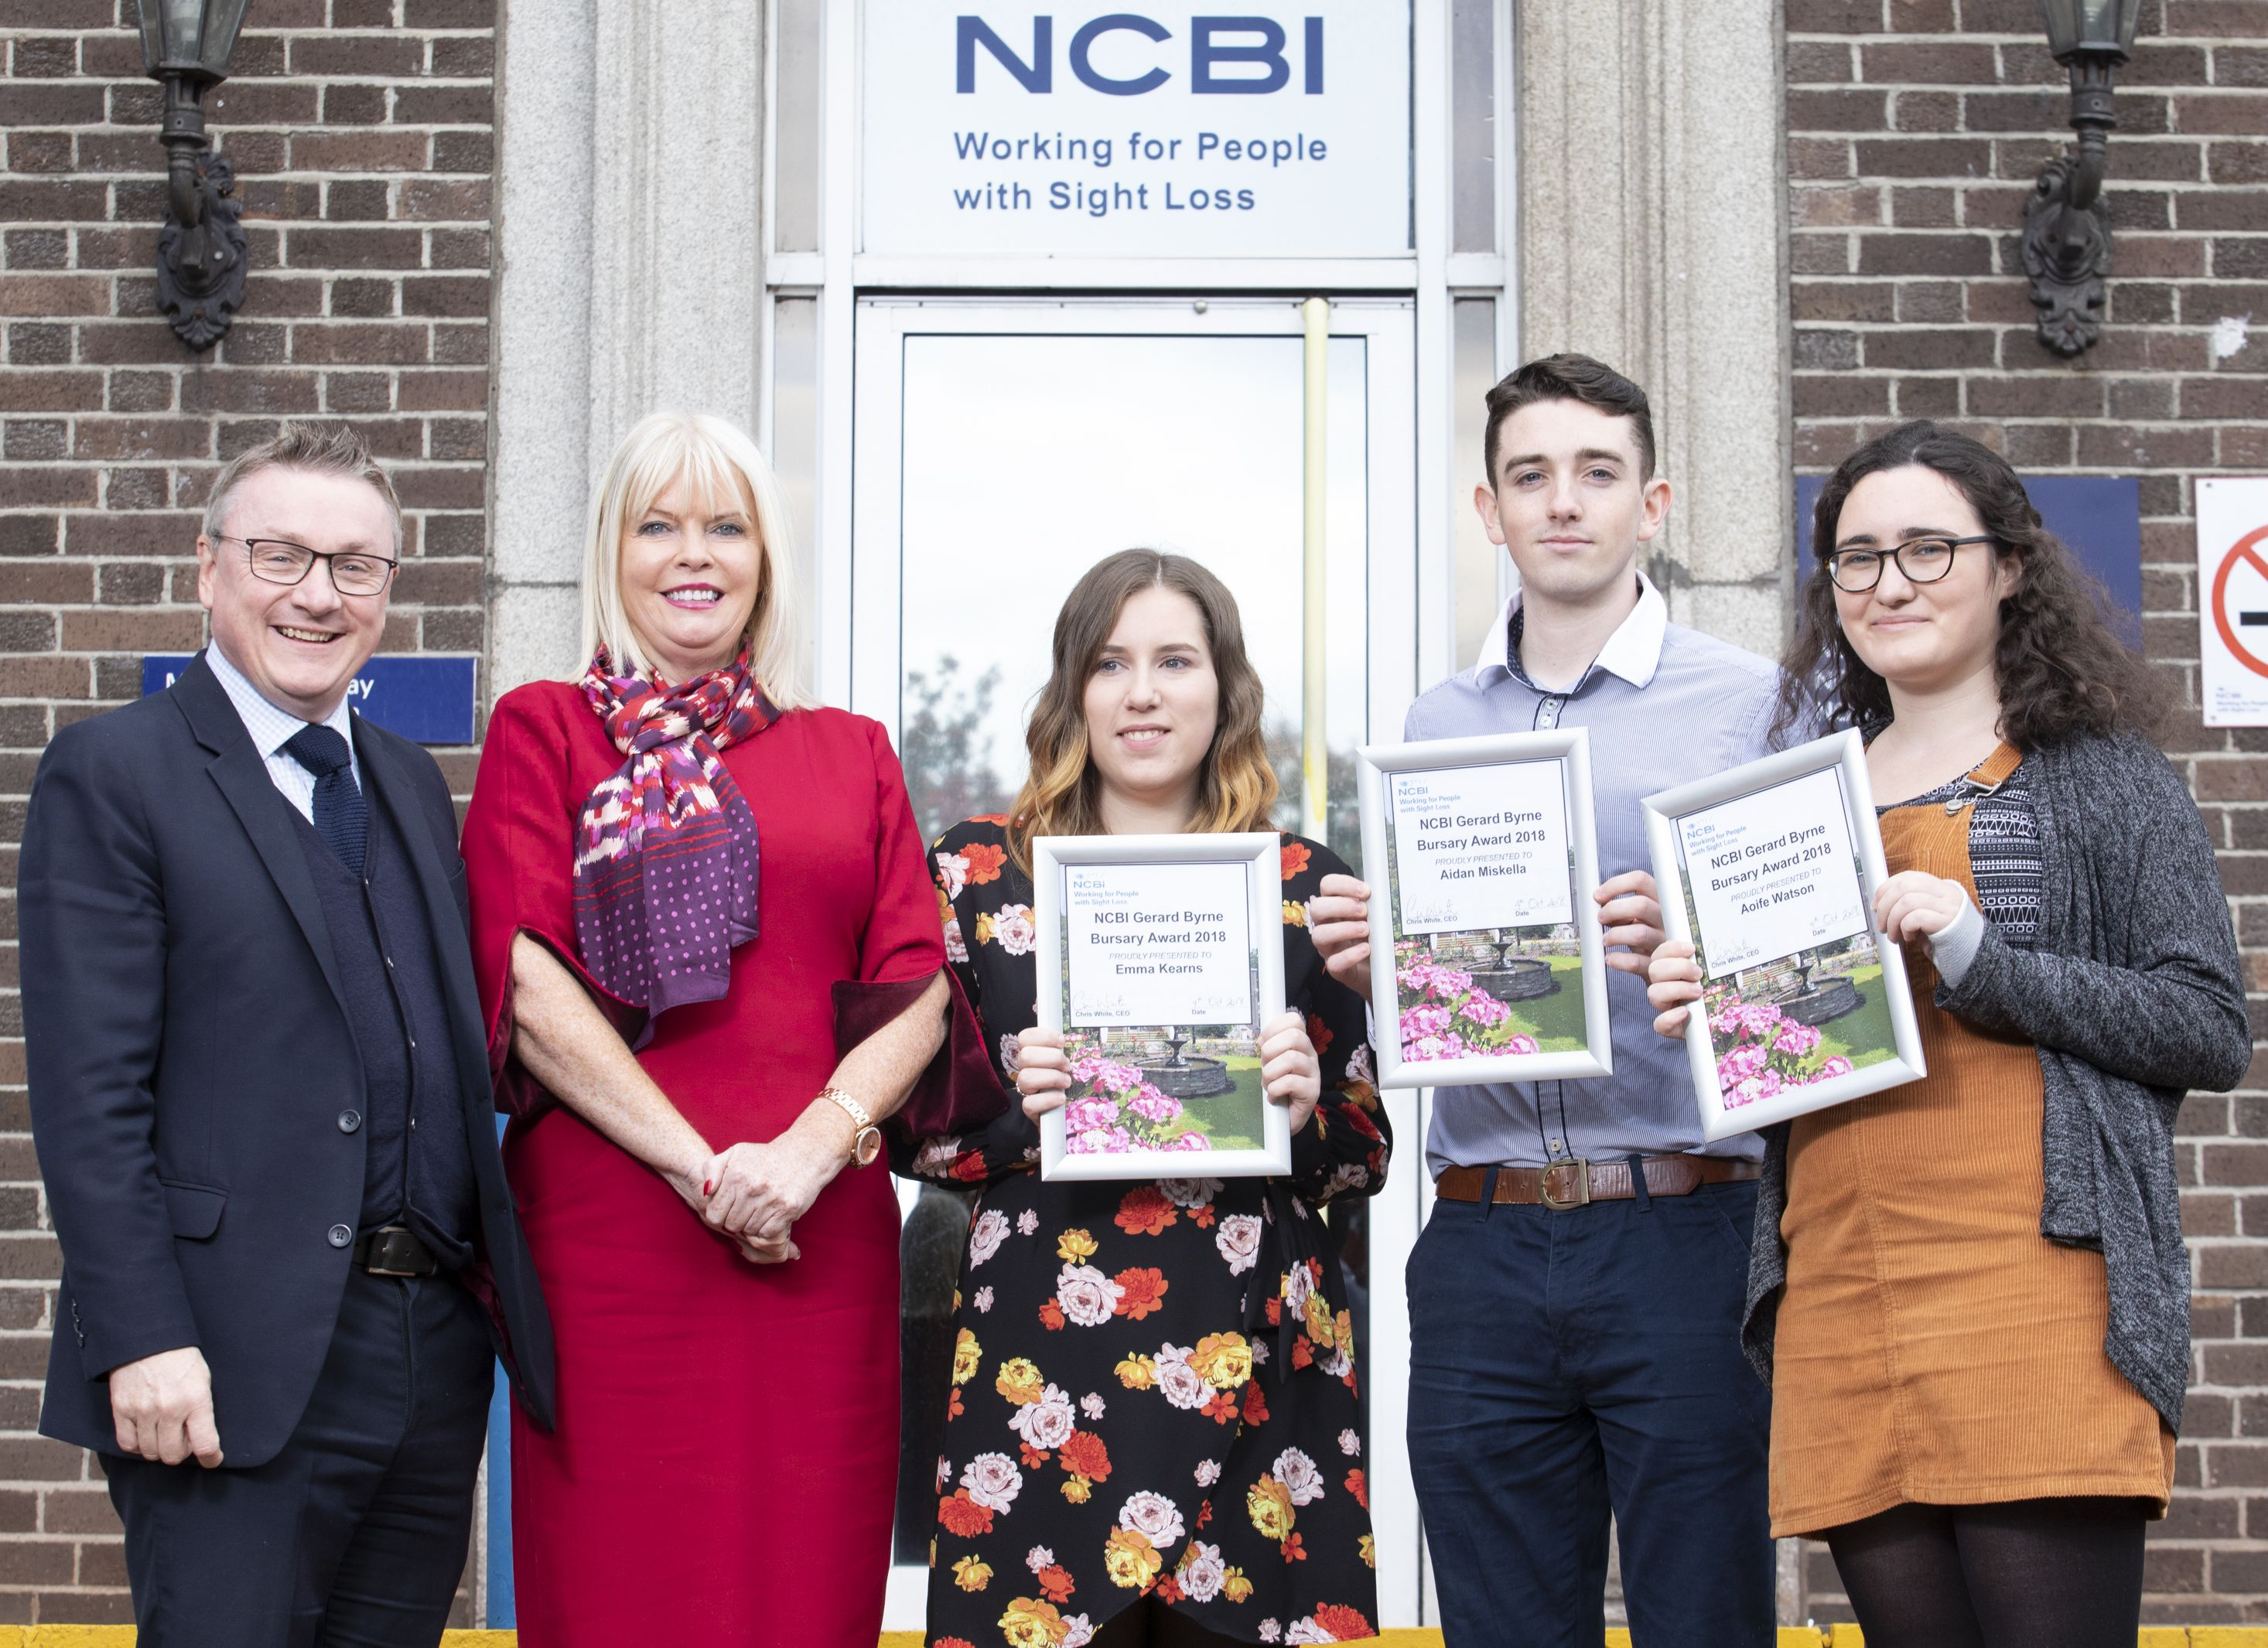 NCBI Group CEO Chris White, with Minister of State for Higher Education, Mary Mitchell O'Connor TD and 2018 Bursary Awardees Emma Kearns, Aidan Miskella, and Aoife Watson, Photographer - Paul Sherwood paul@sherwood.ie 087 230 9096 NCBI, presentation of Gerard Byrne Bursary Awards. October 2018